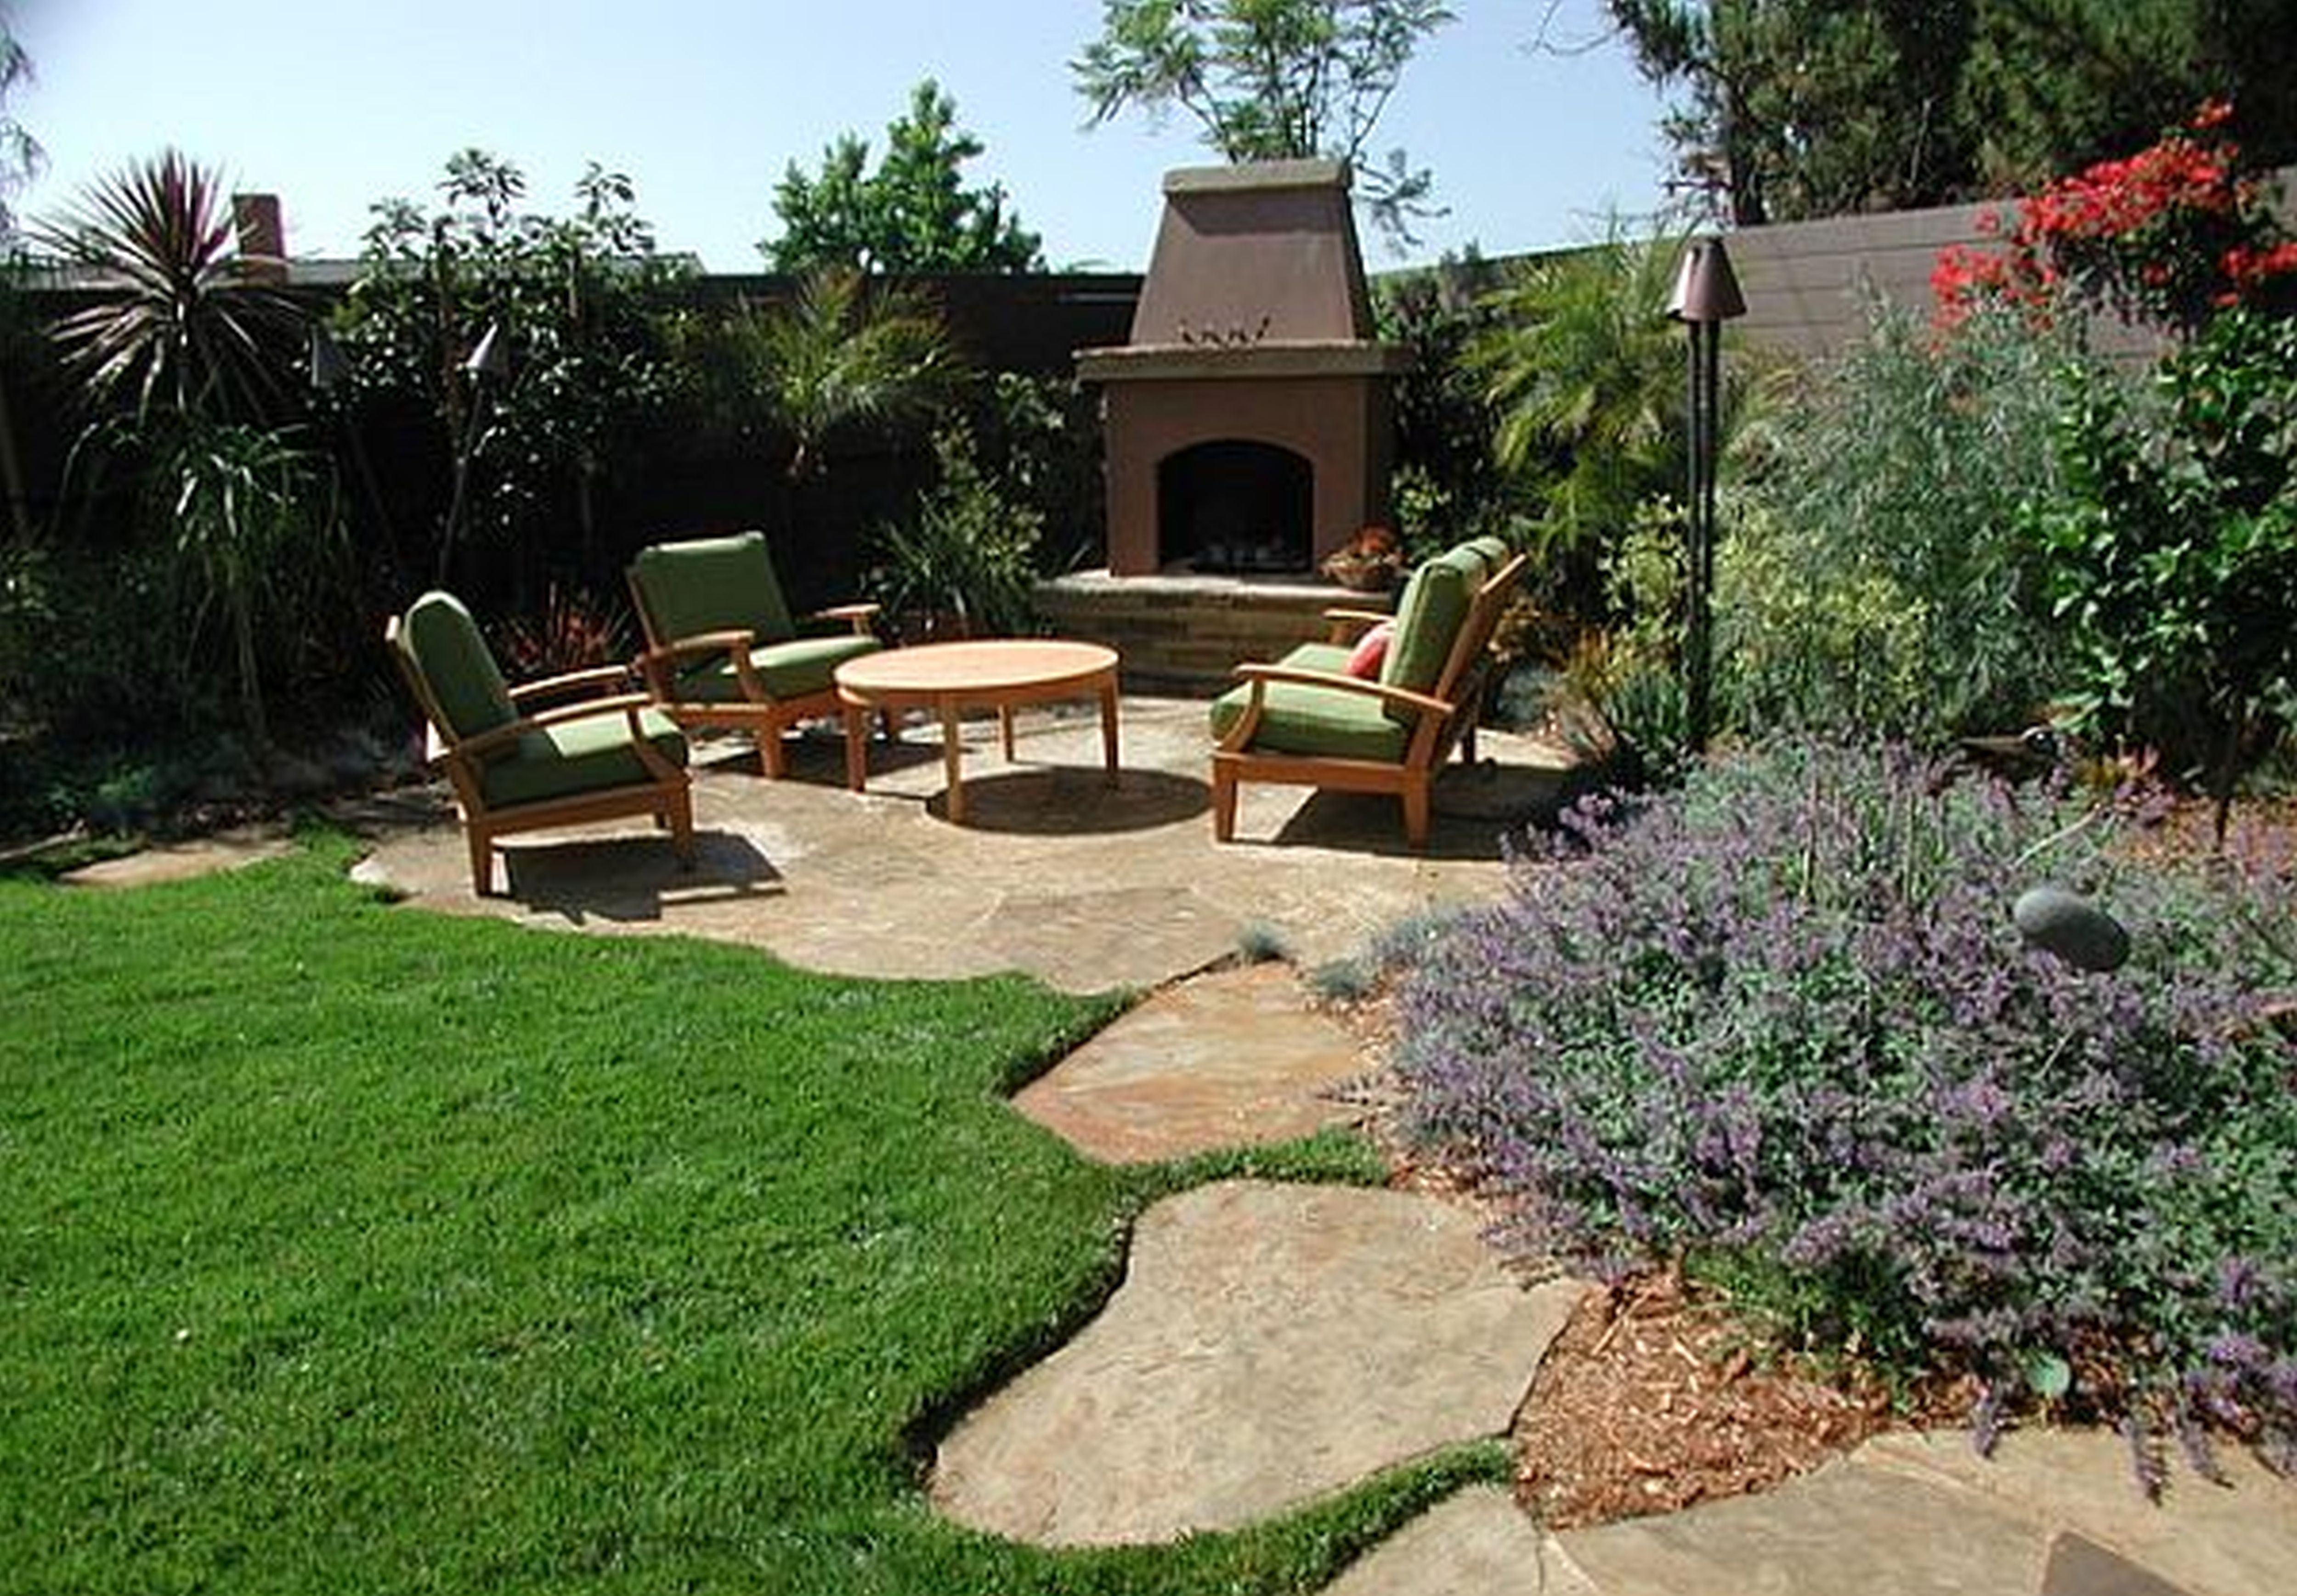 17 best images about yard on pinterestfront yard landscaping